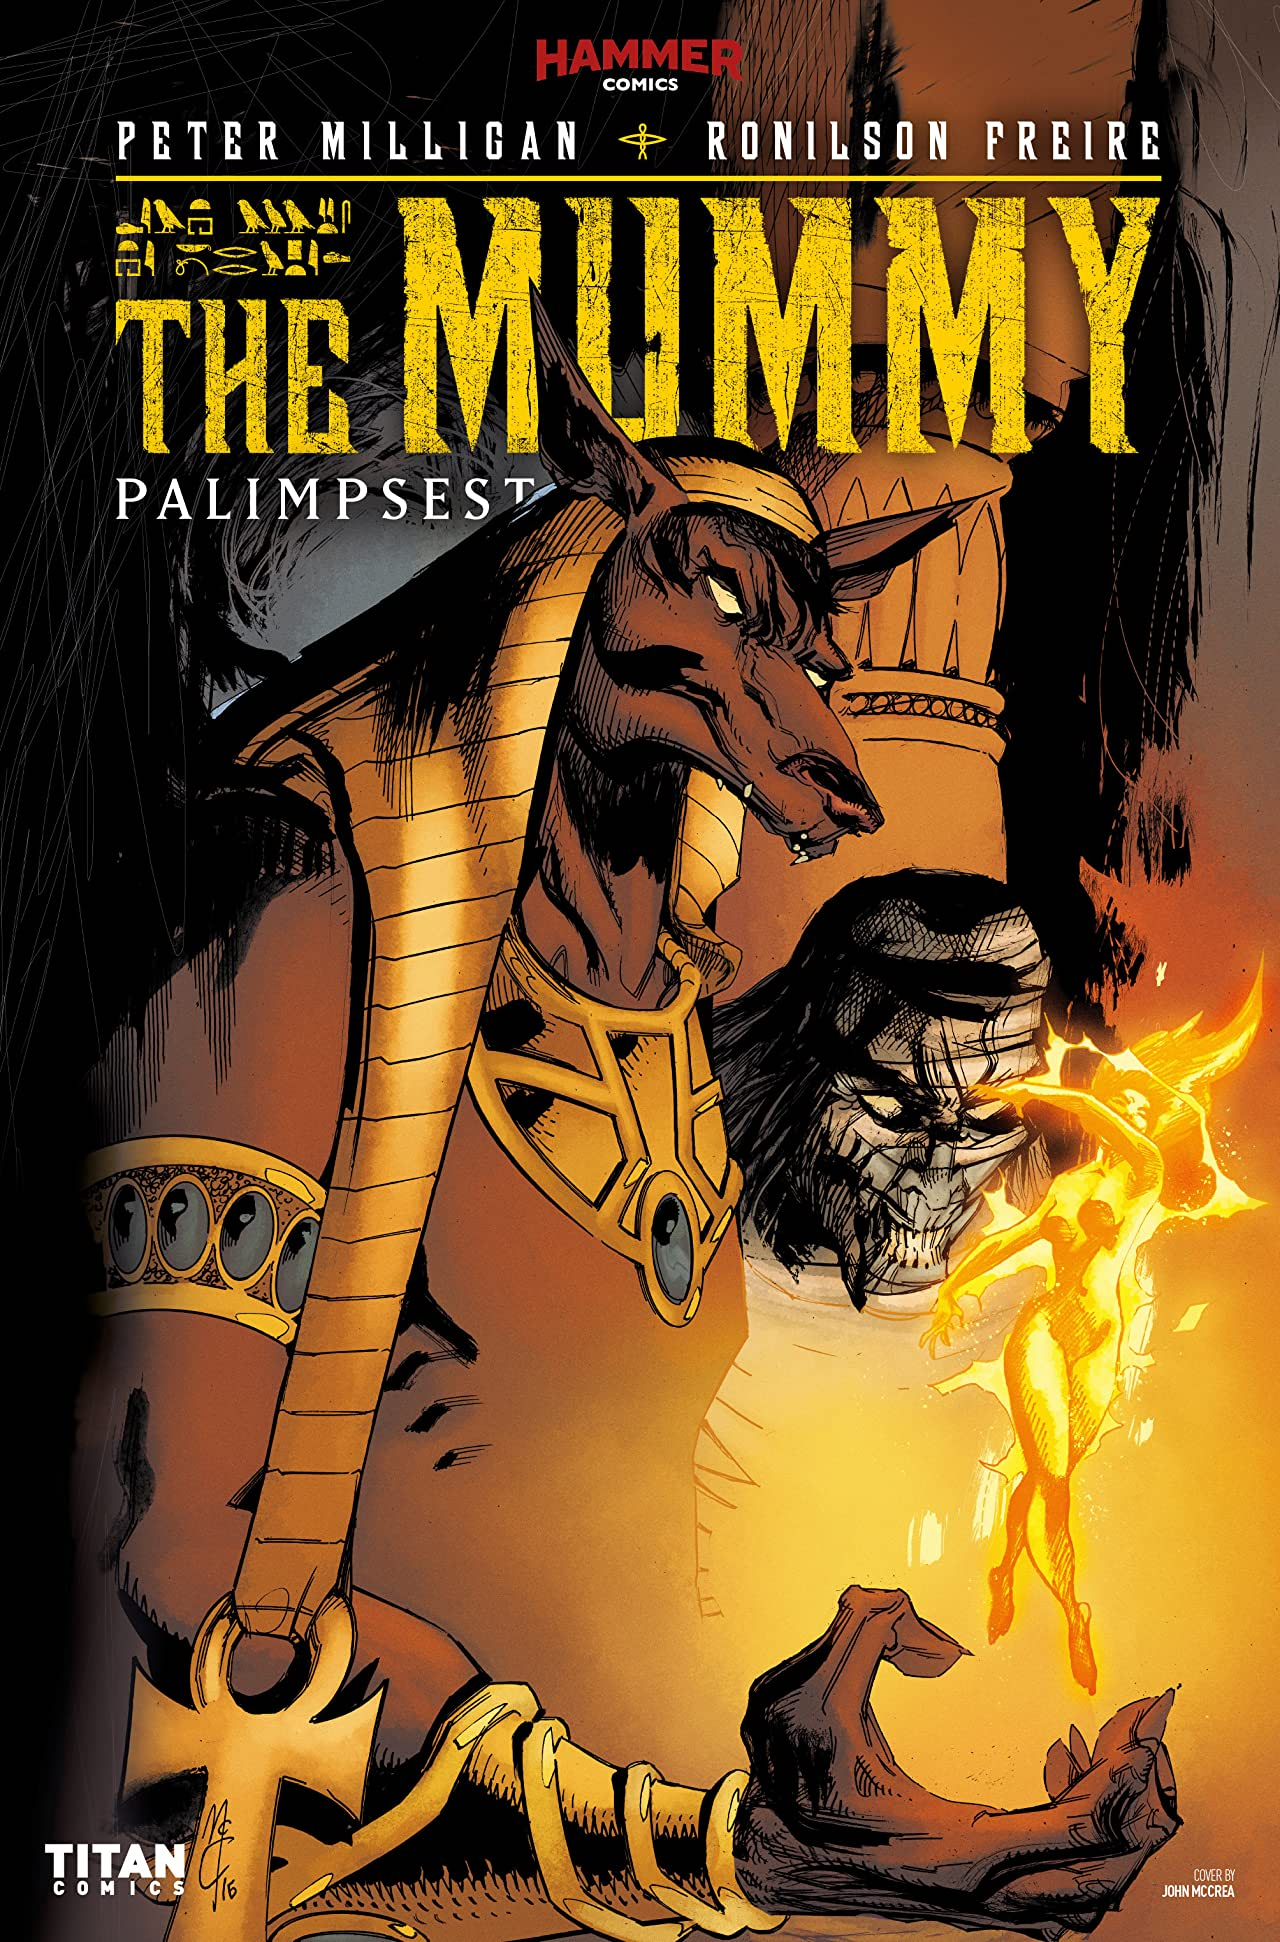 The Mummy #1